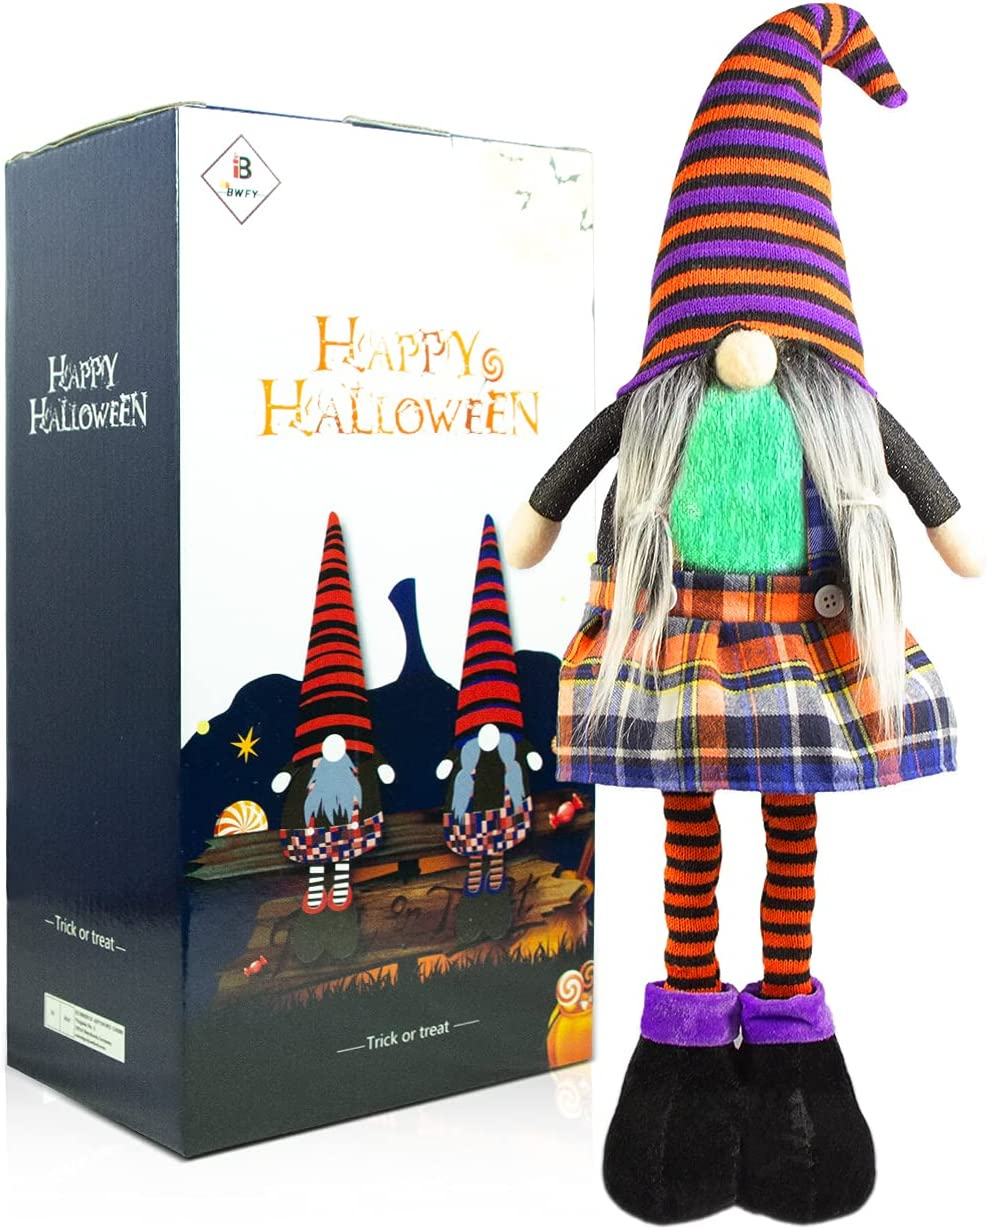 Halloween Max 41% OFF Decorations Gnome OFFicial shop Plush Swedish Deco Doll Gnomes Tomte